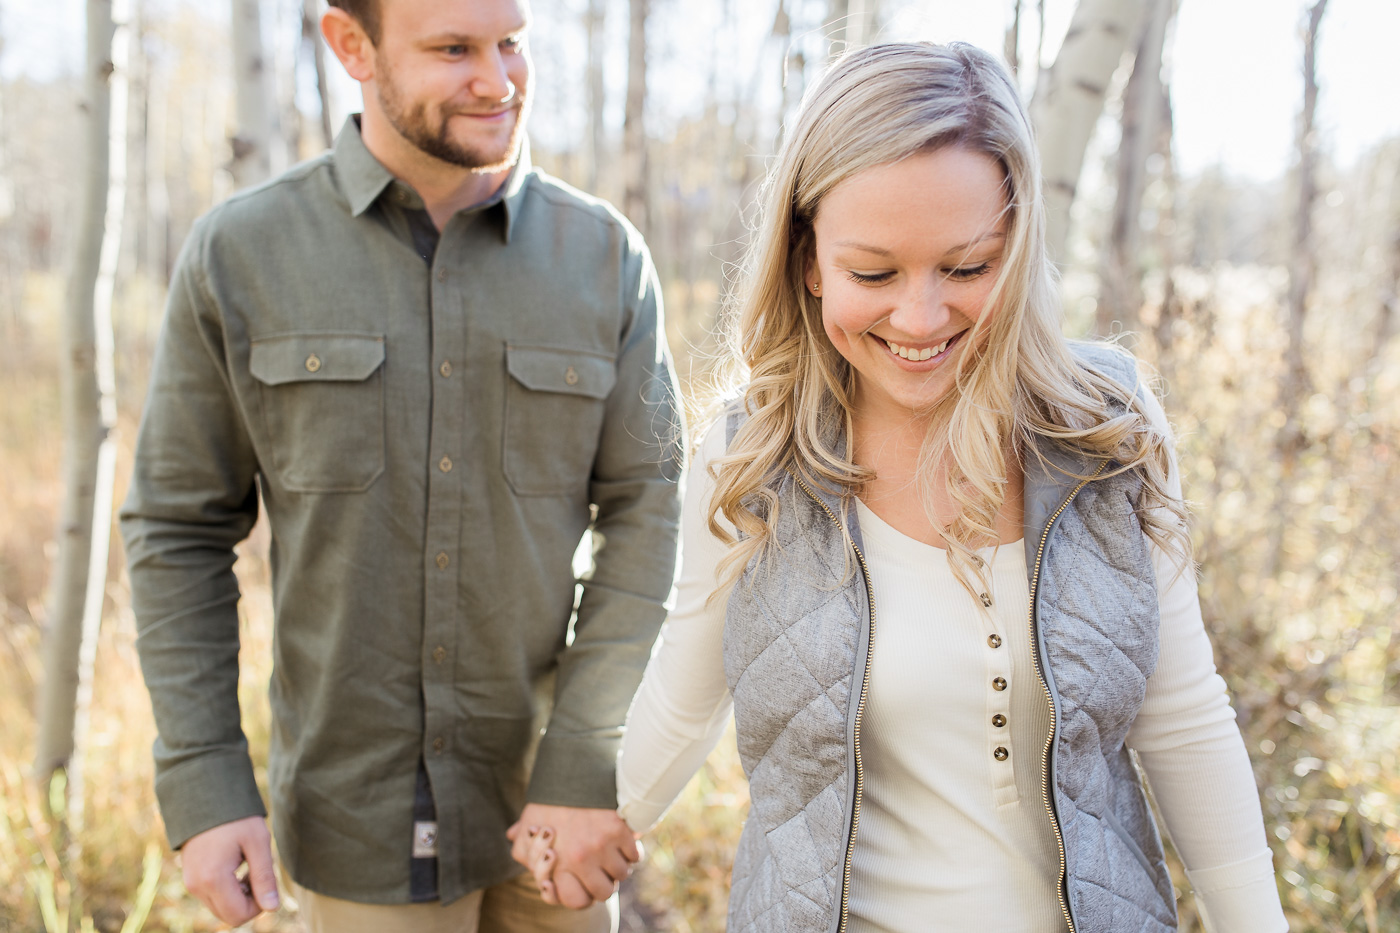 Vedauwoo Engagement Session by Megan Lee Photography